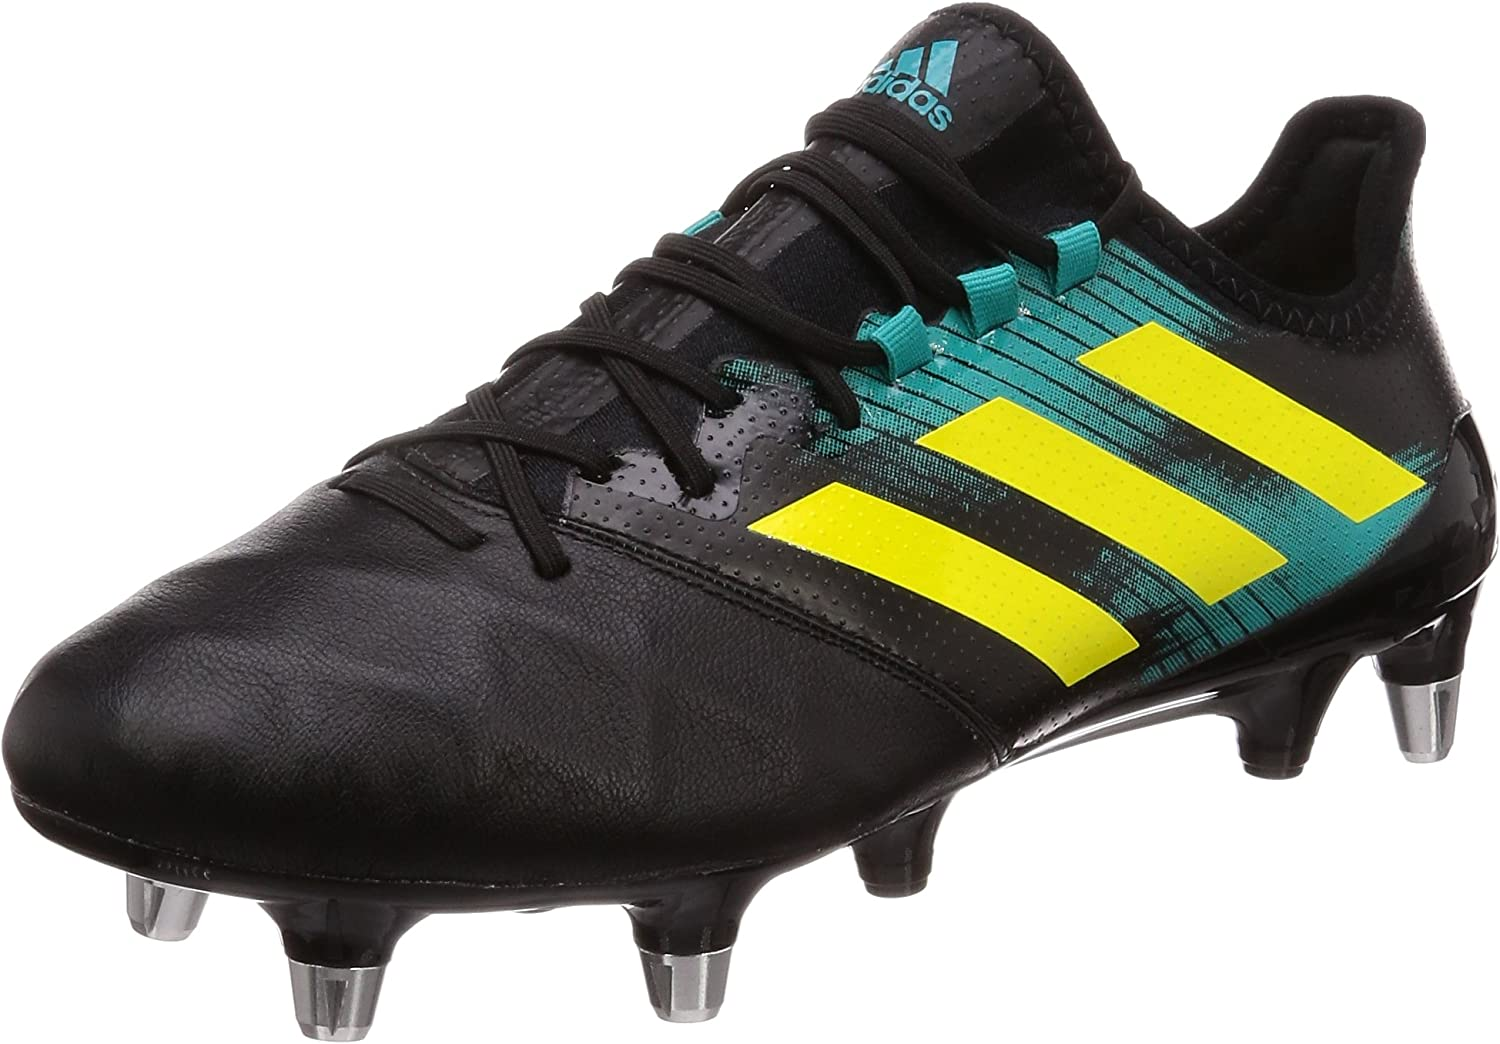 Adidas Kakari Light SG Mena s Rugby Boots